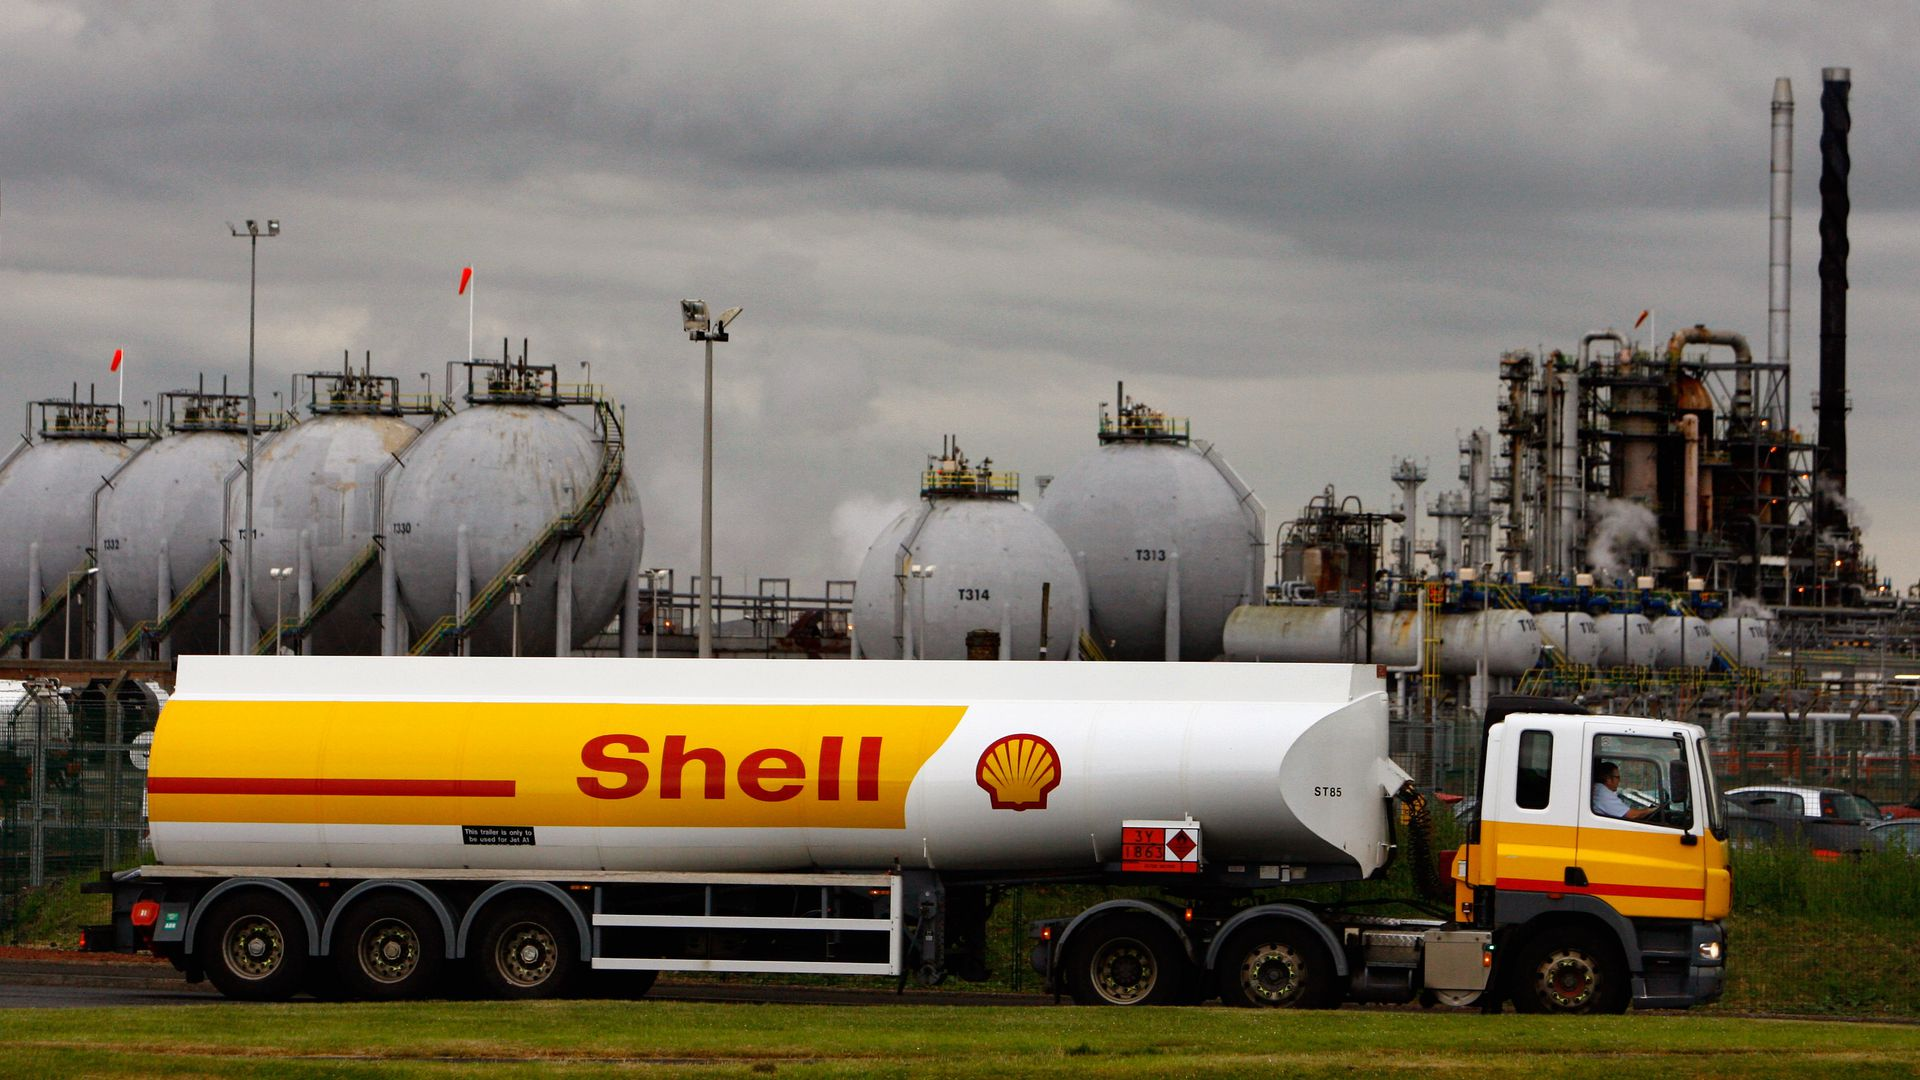 In this image, a Shell brand tanker sits in front of a plant on a cloudy day.